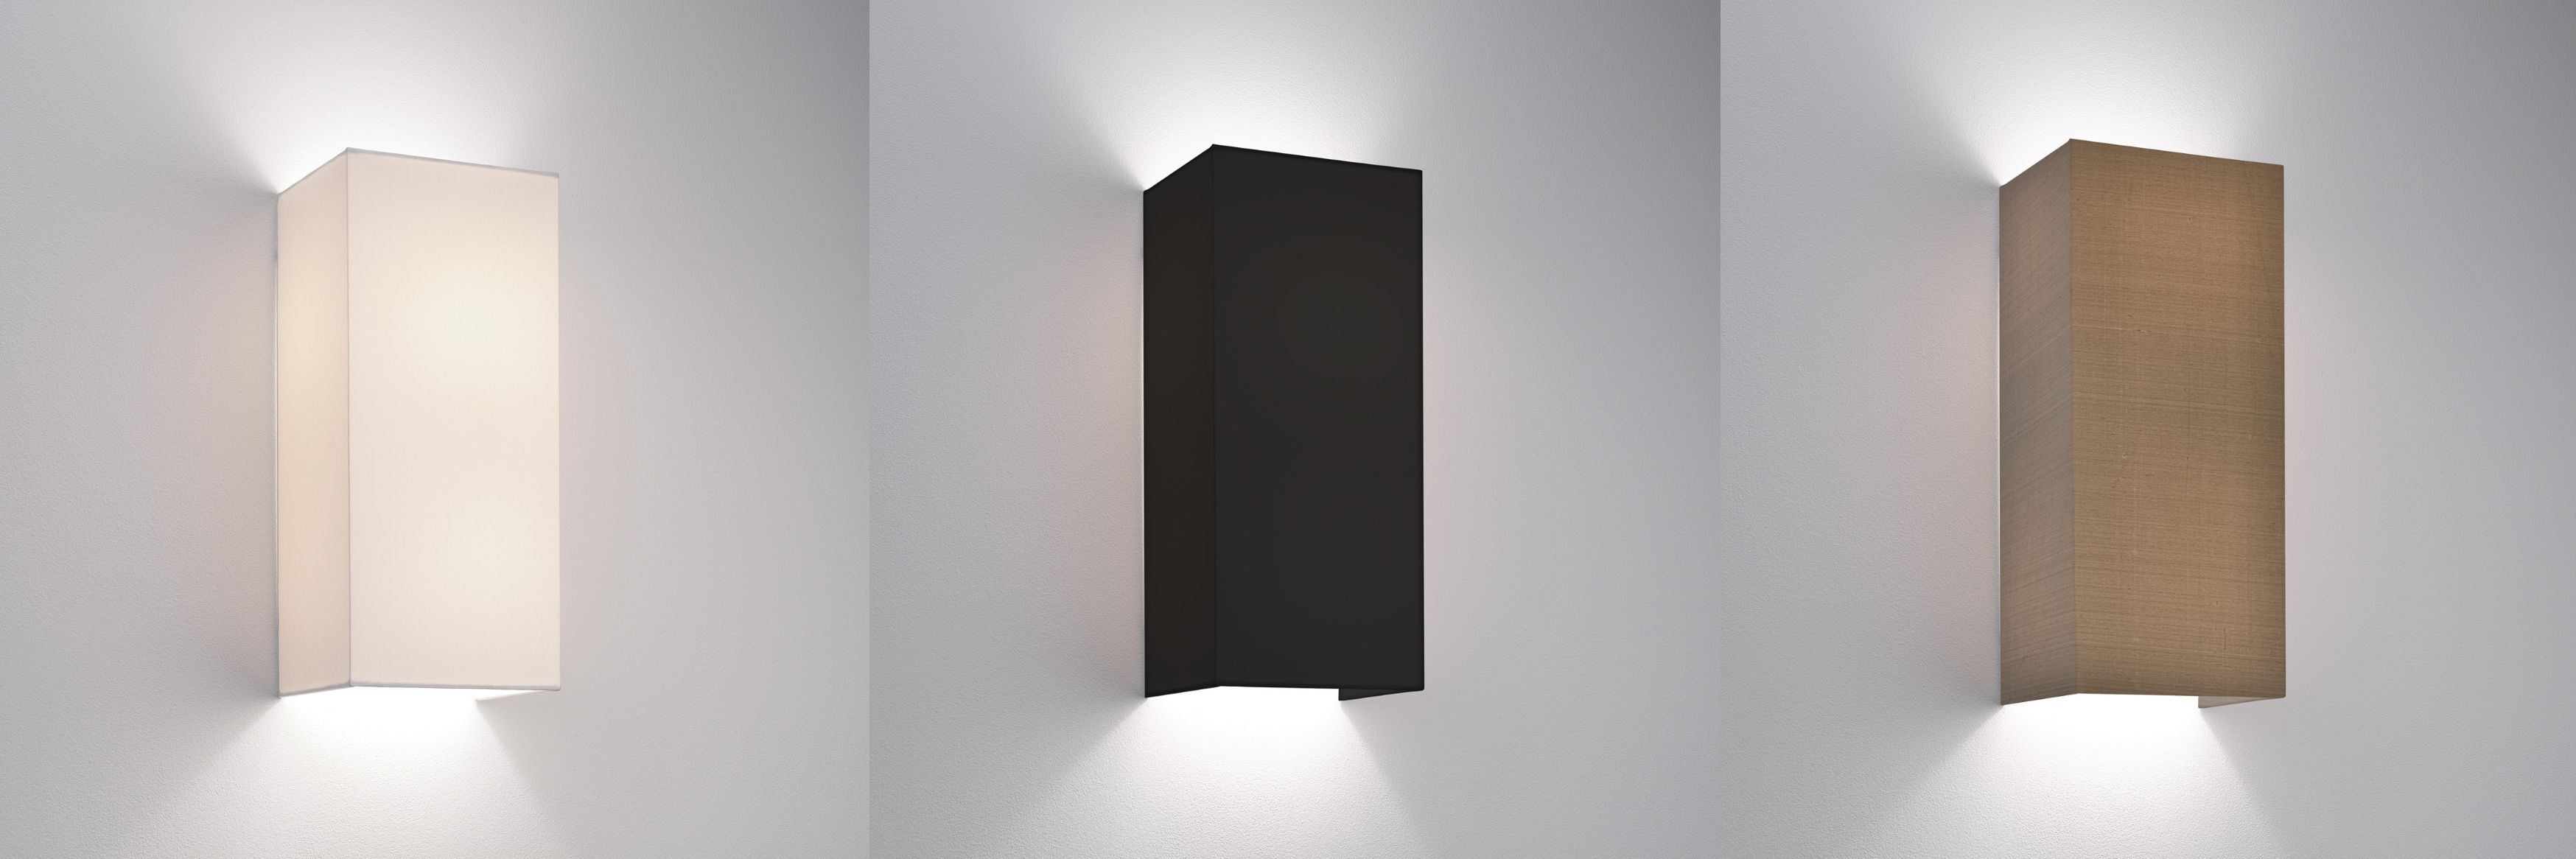 Astro chuo 380 fabric wall light shade 2 x 60w e27 white black astro chuo 380 fabric wall light shade 2 x 60w e27 white black oyster mozeypictures Gallery